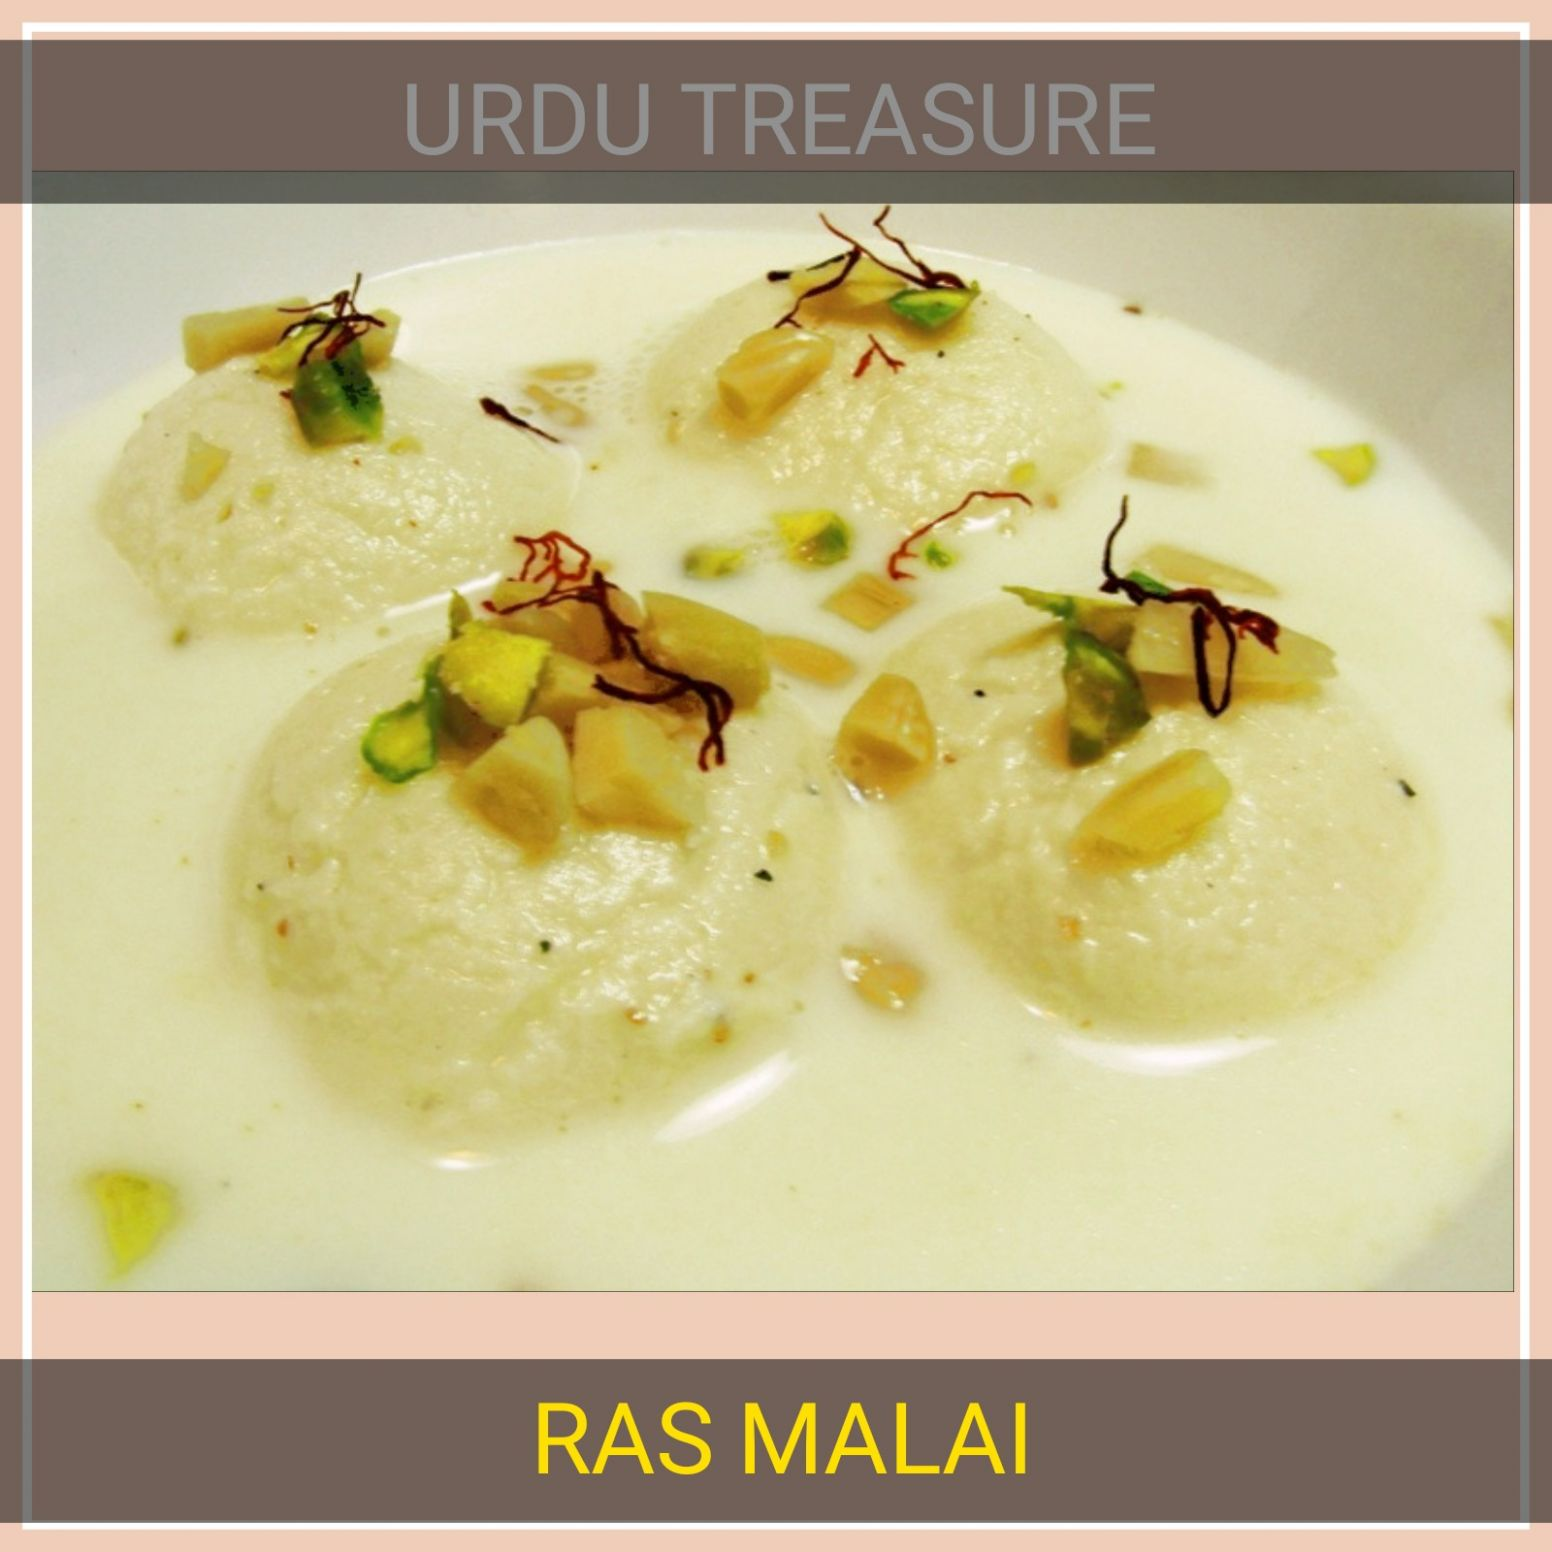 rasmalai ki recipe - Recipes Rasmalai Urdu